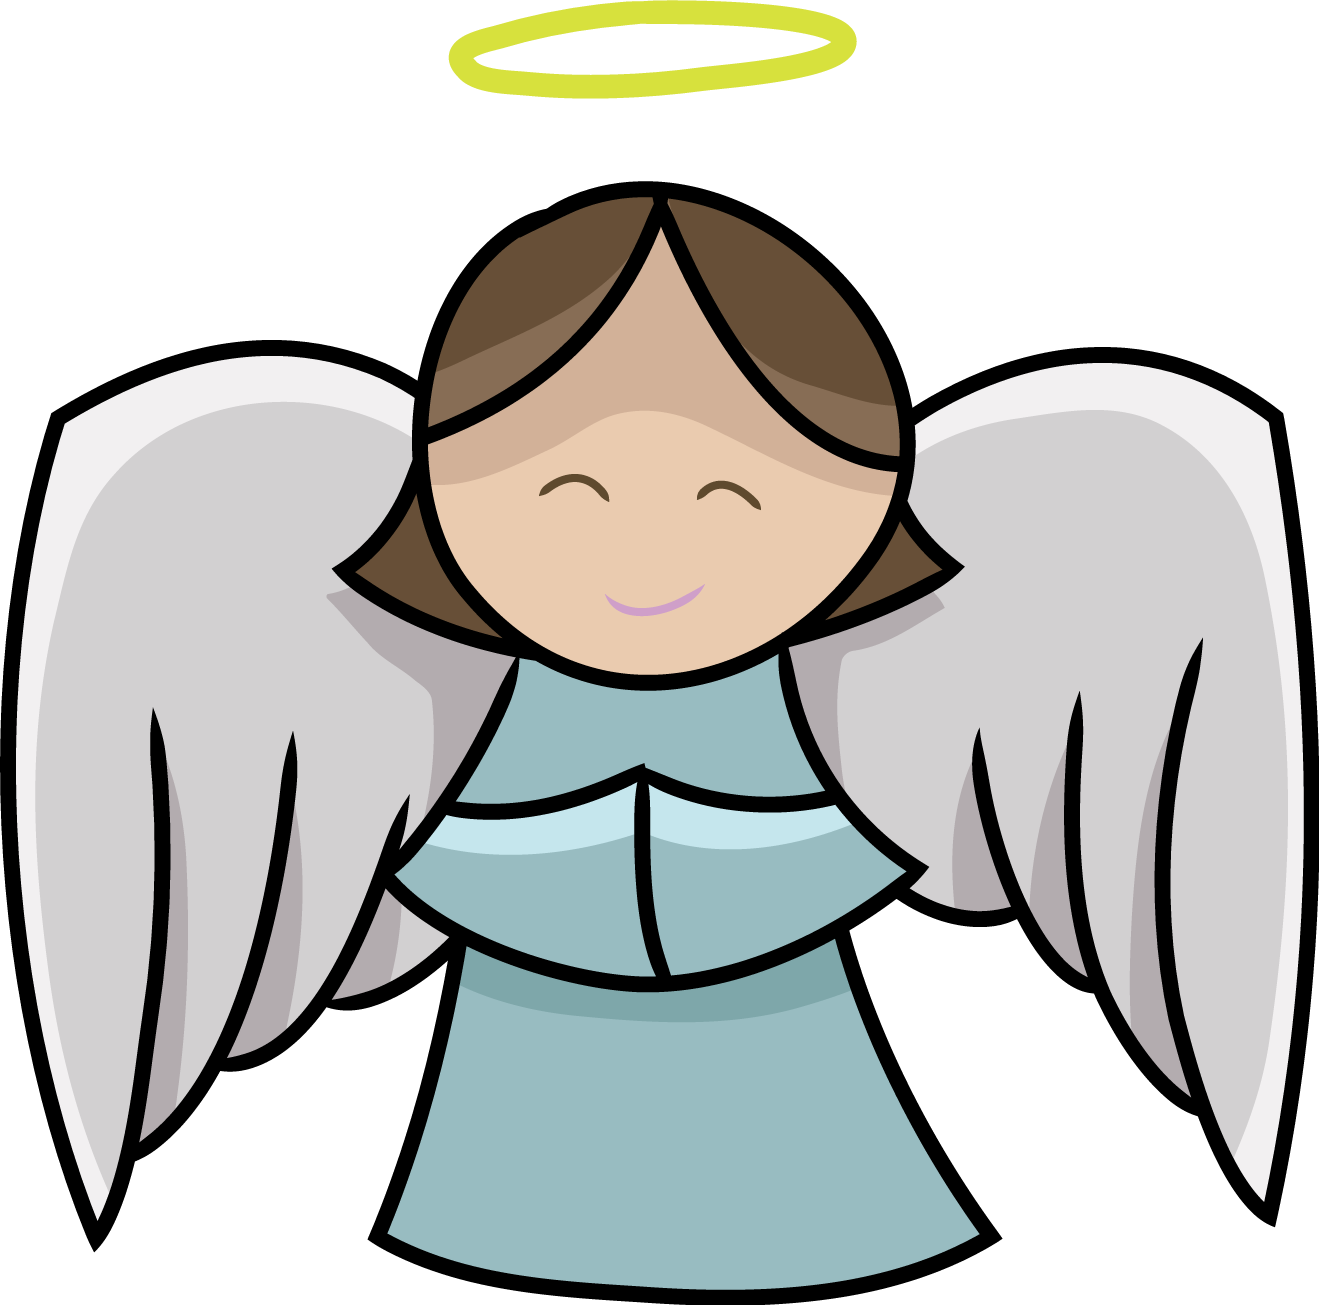 angel clip art free cute lovely angel clip art things to wear rh pinterest com au free clip art of angel blowing trumpet free clipart of angels 400x100 pixels